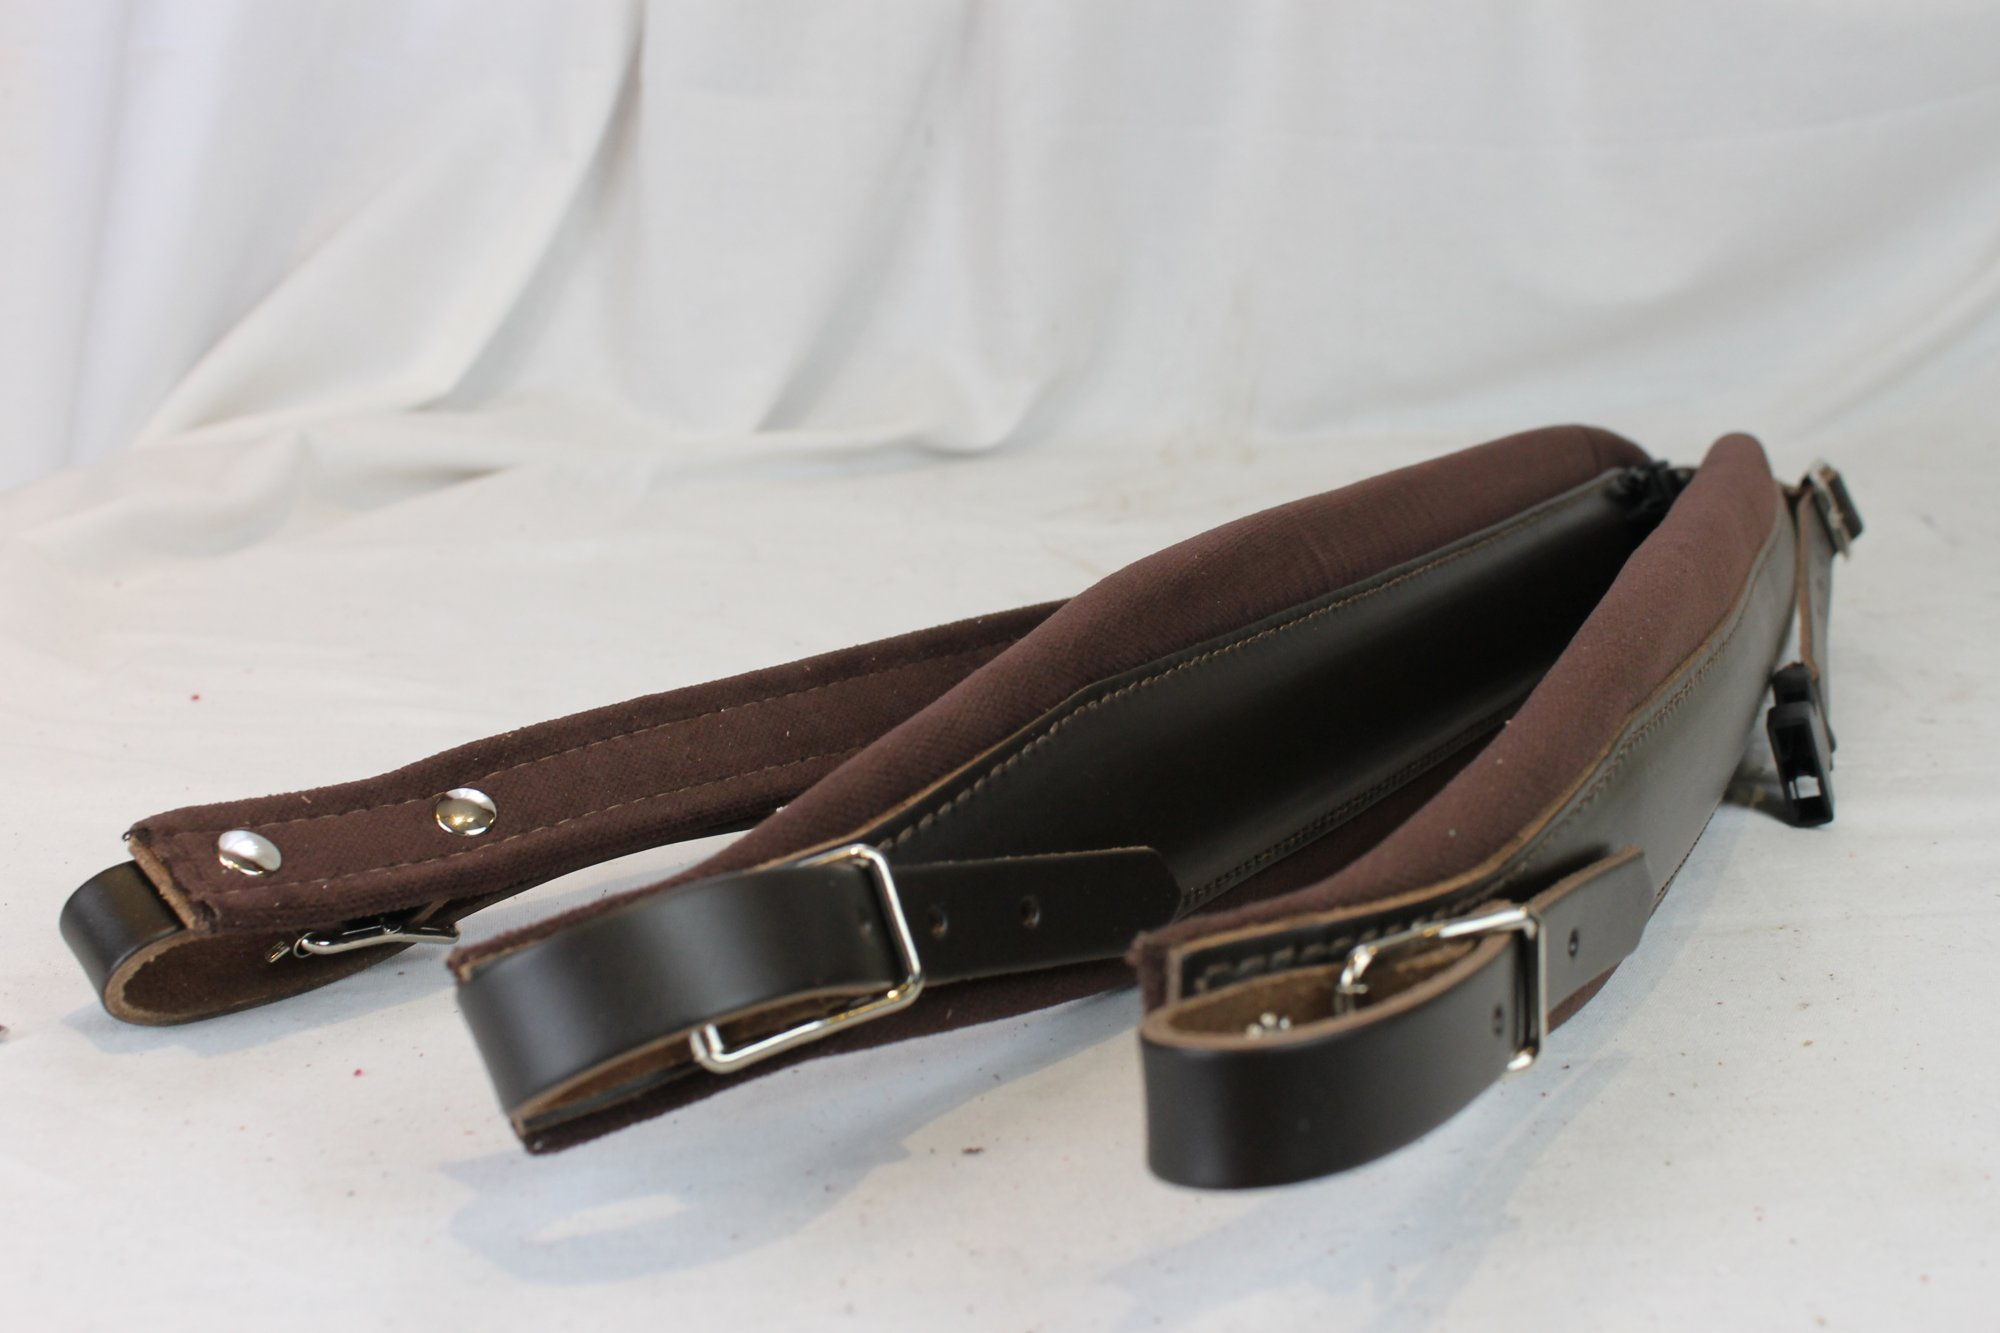 New Brown Leather Velour Fuselli Accordion Shoulder Straps Width (8cm / 3.1in) Length (105~123cm / 41.3~48.4in)